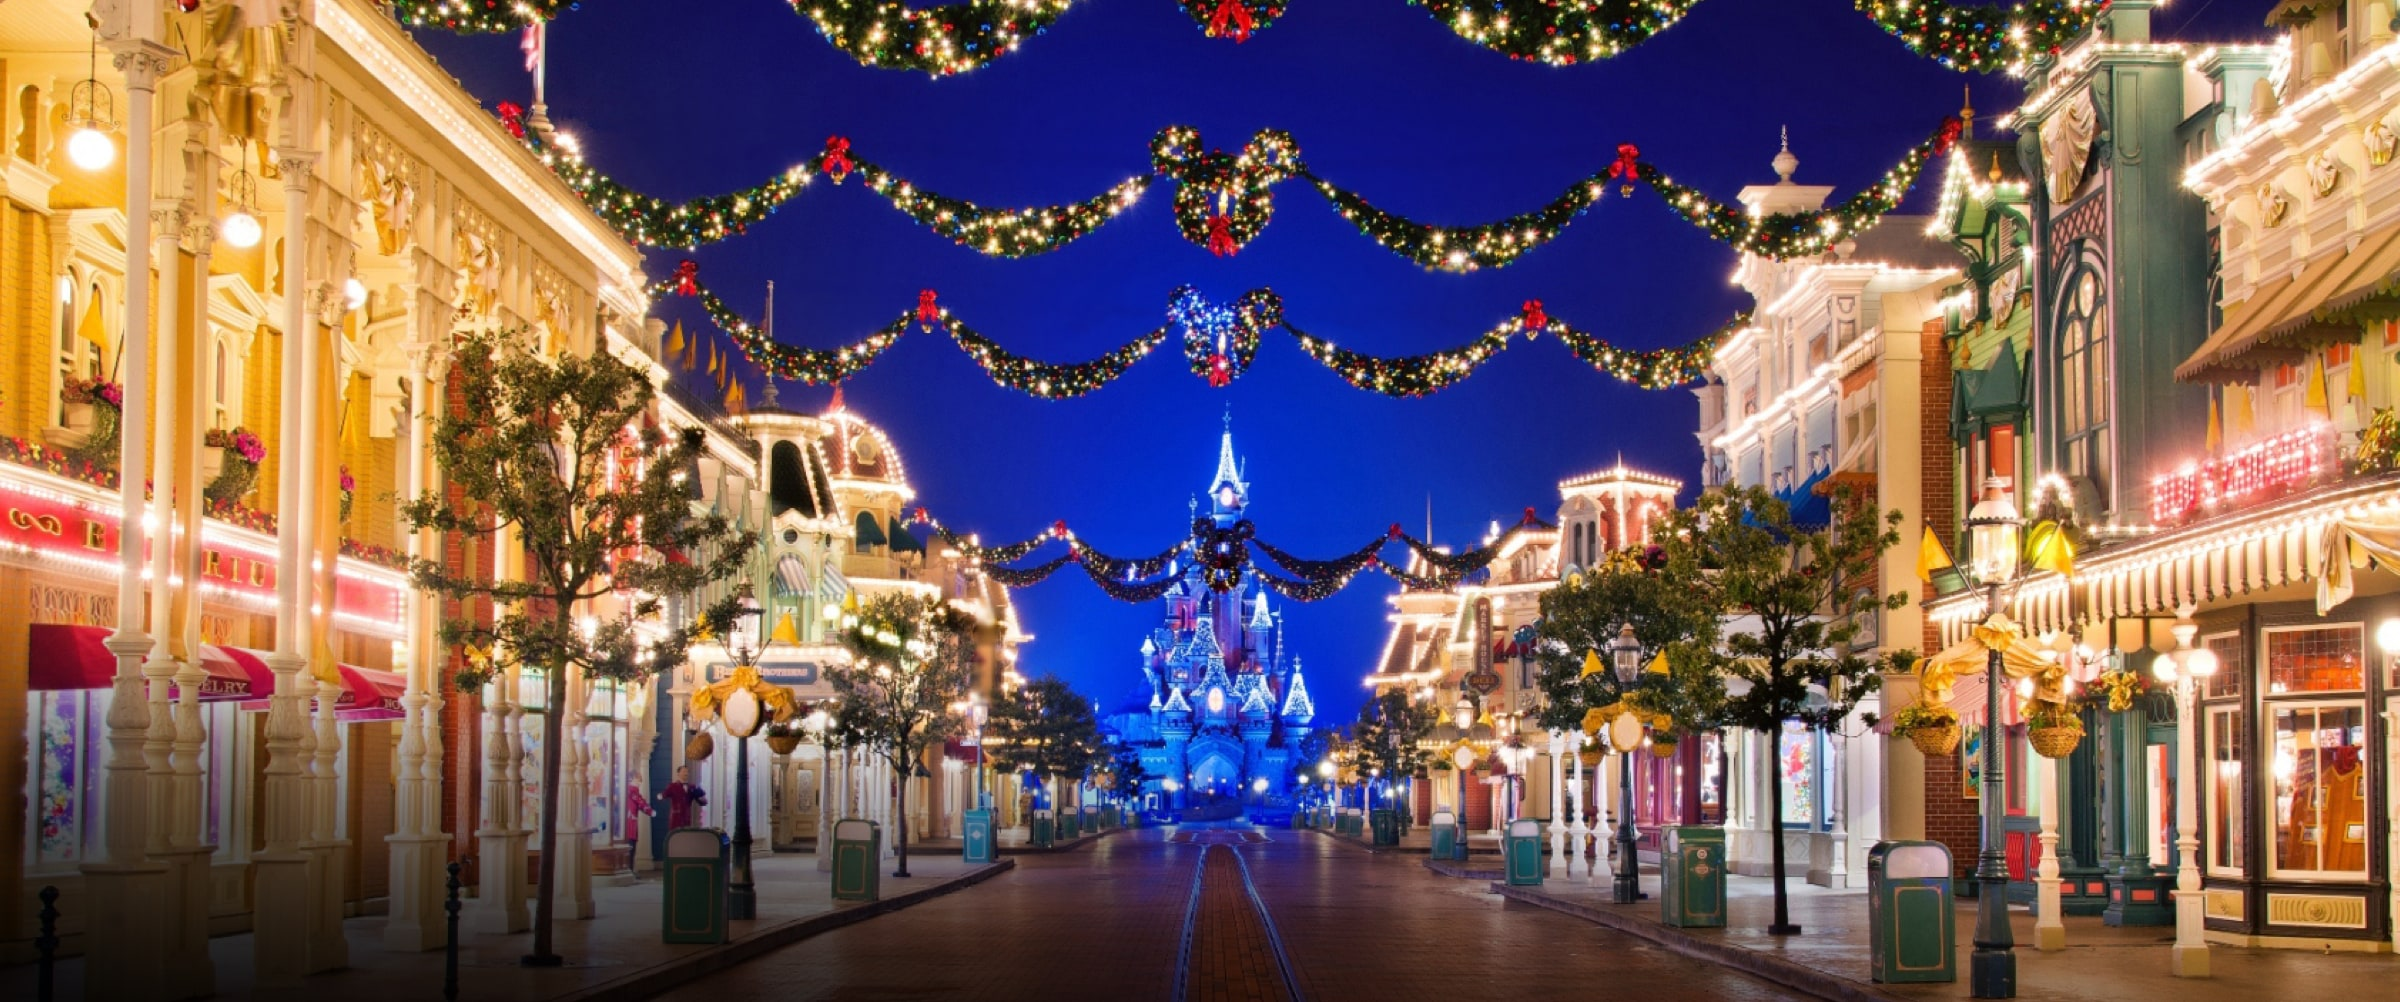 Disneyland Paris | Christmas